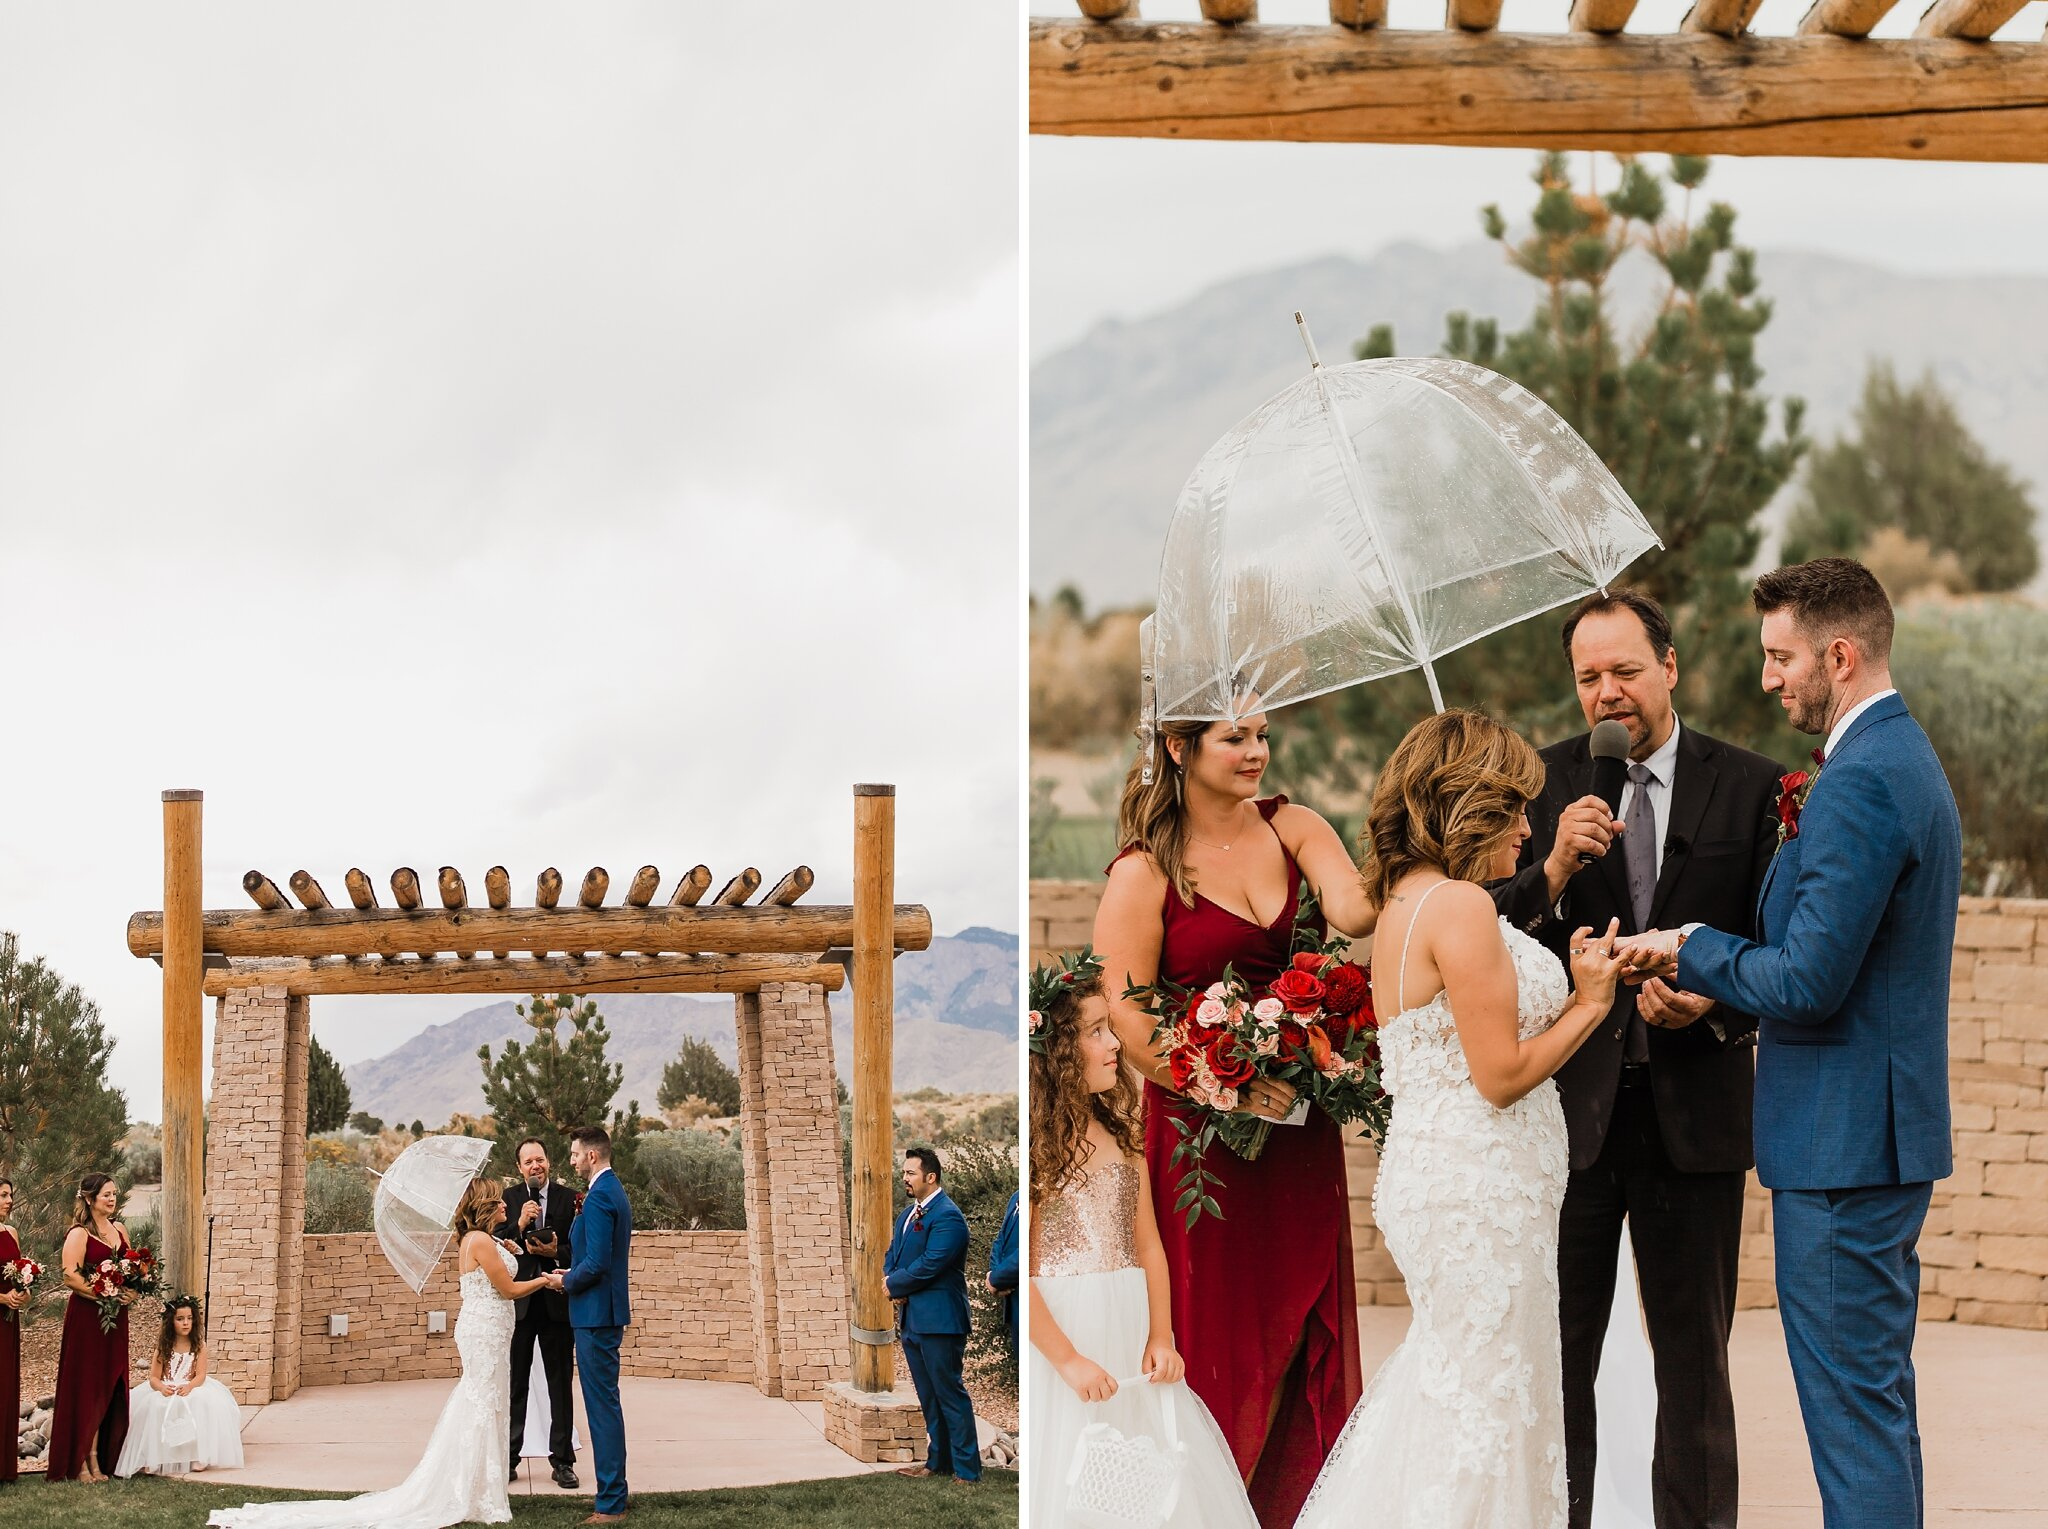 Alicia+lucia+photography+-+albuquerque+wedding+photographer+-+santa+fe+wedding+photography+-+new+mexico+wedding+photographer+-+new+mexico+wedding+-+albuquerque+wedding+-+sandia+wedding+-+sandia+event+center+wedding_0050.jpg